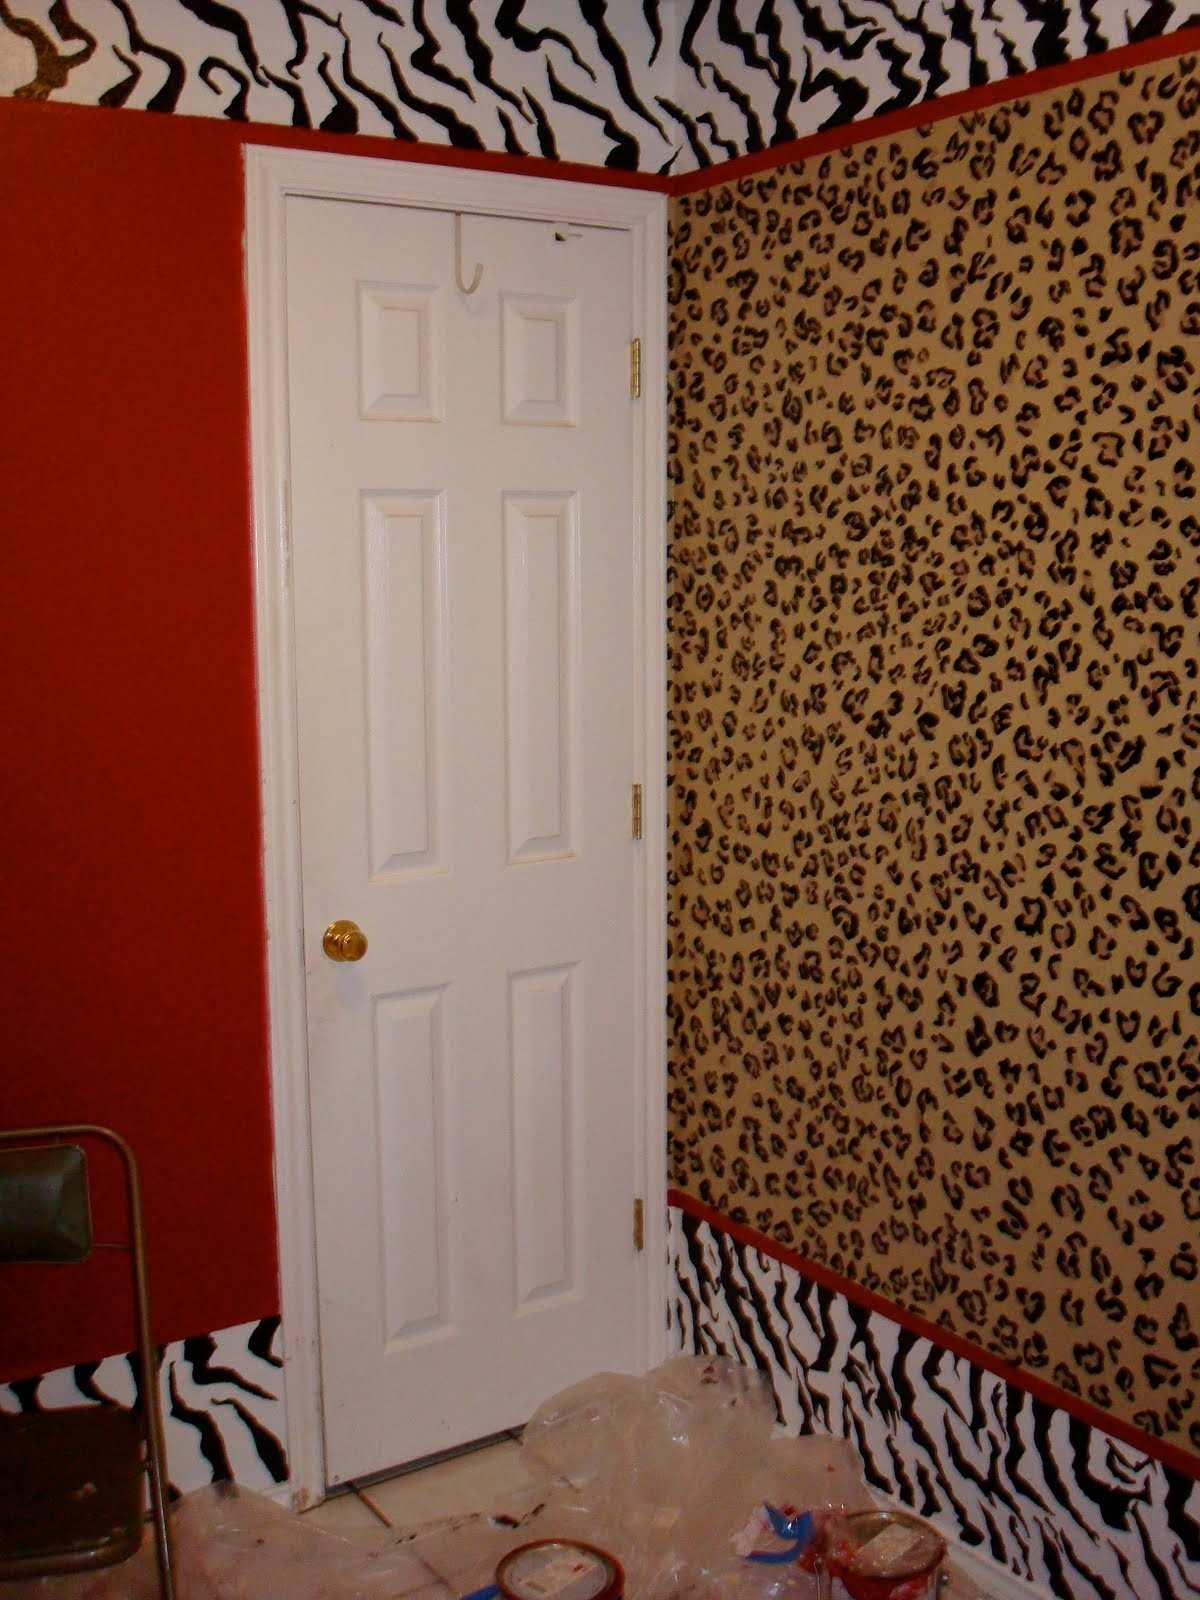 accessories Wonderful Leopard Print Animal Bathroom Ideas Bedroom